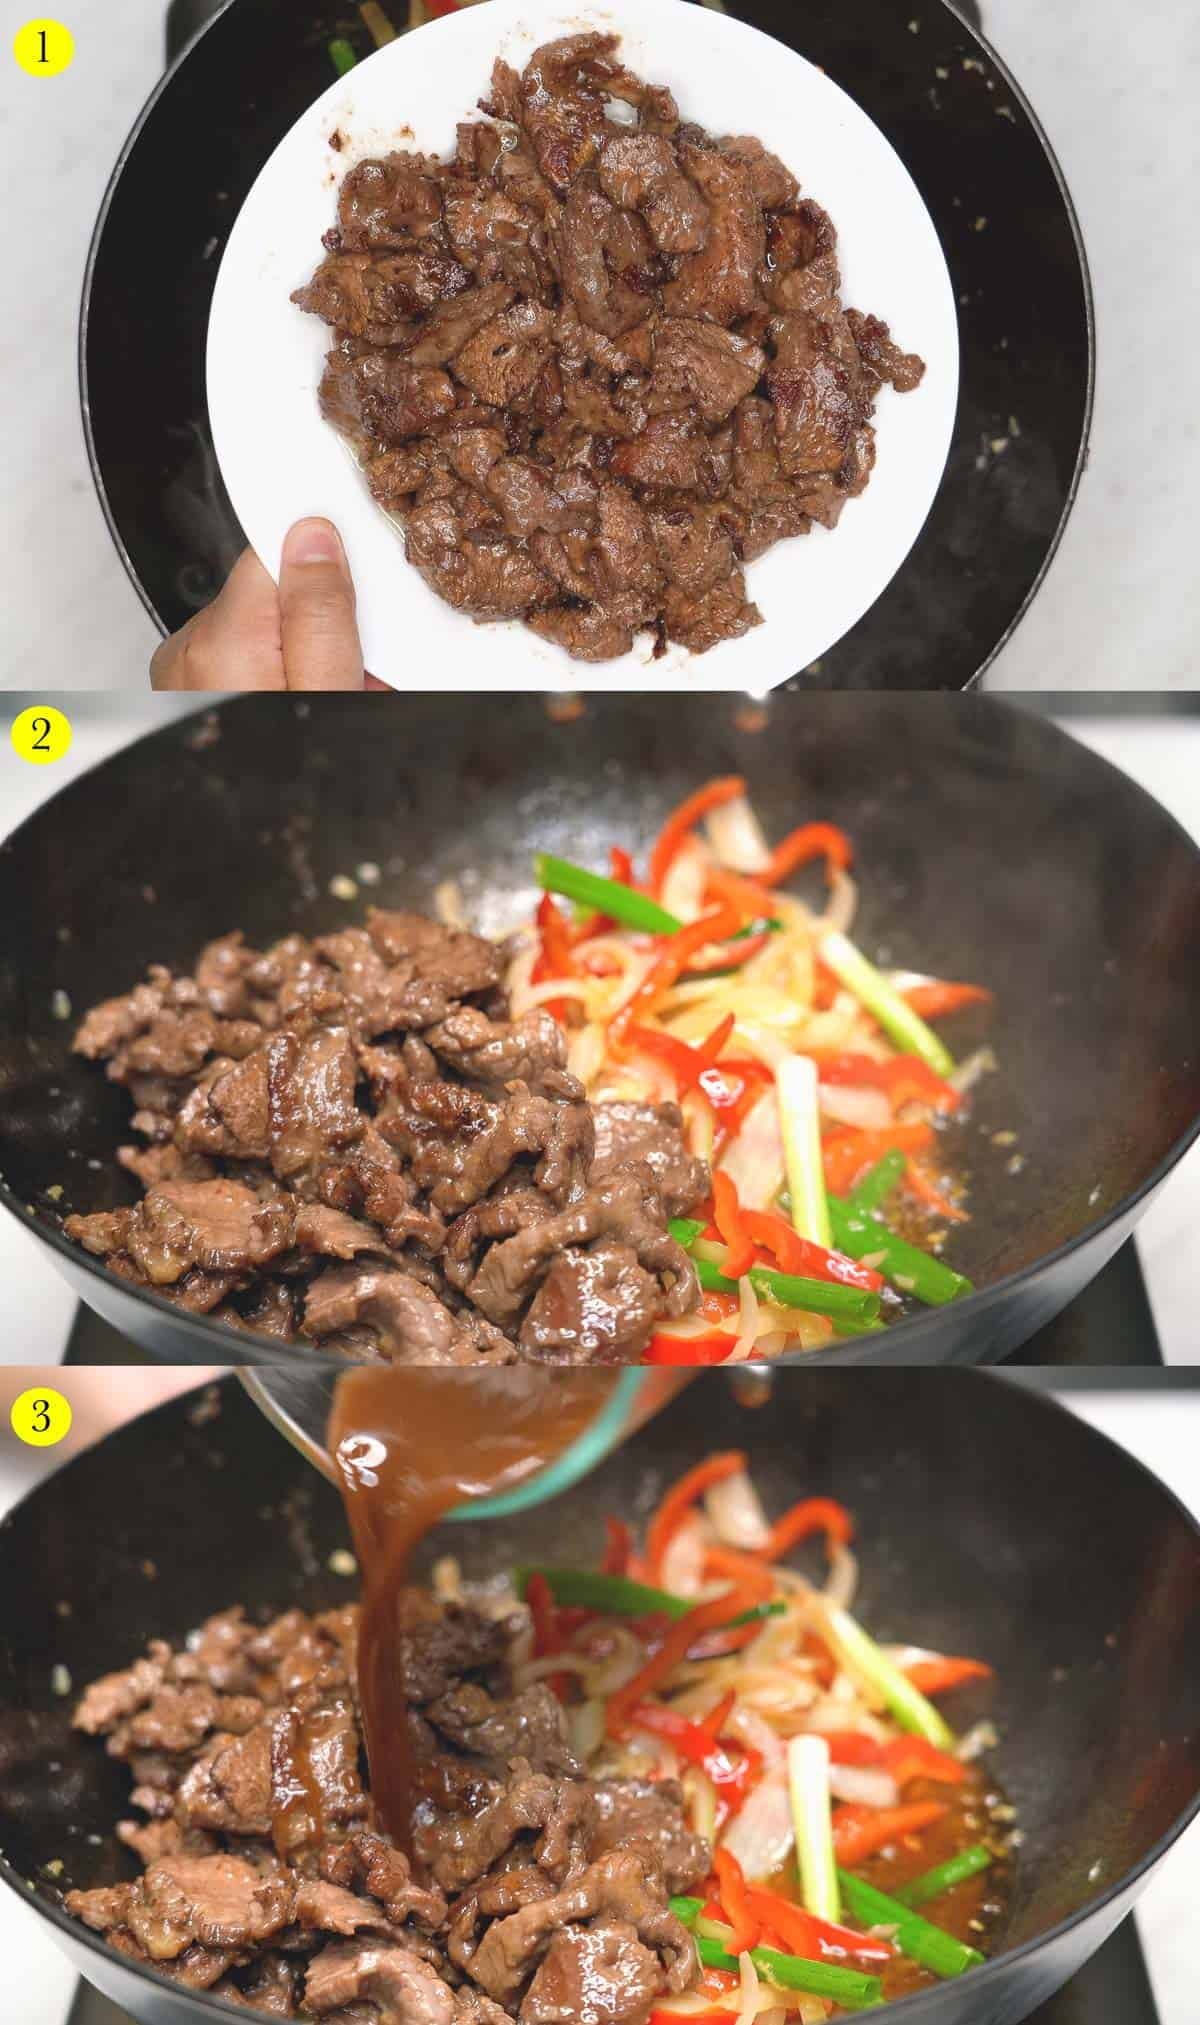 1. Plate of seared meat over the wok. 2. Seared meat in the wok with the vegetables. 3. Pouring the sauce over the meat and vegetables.